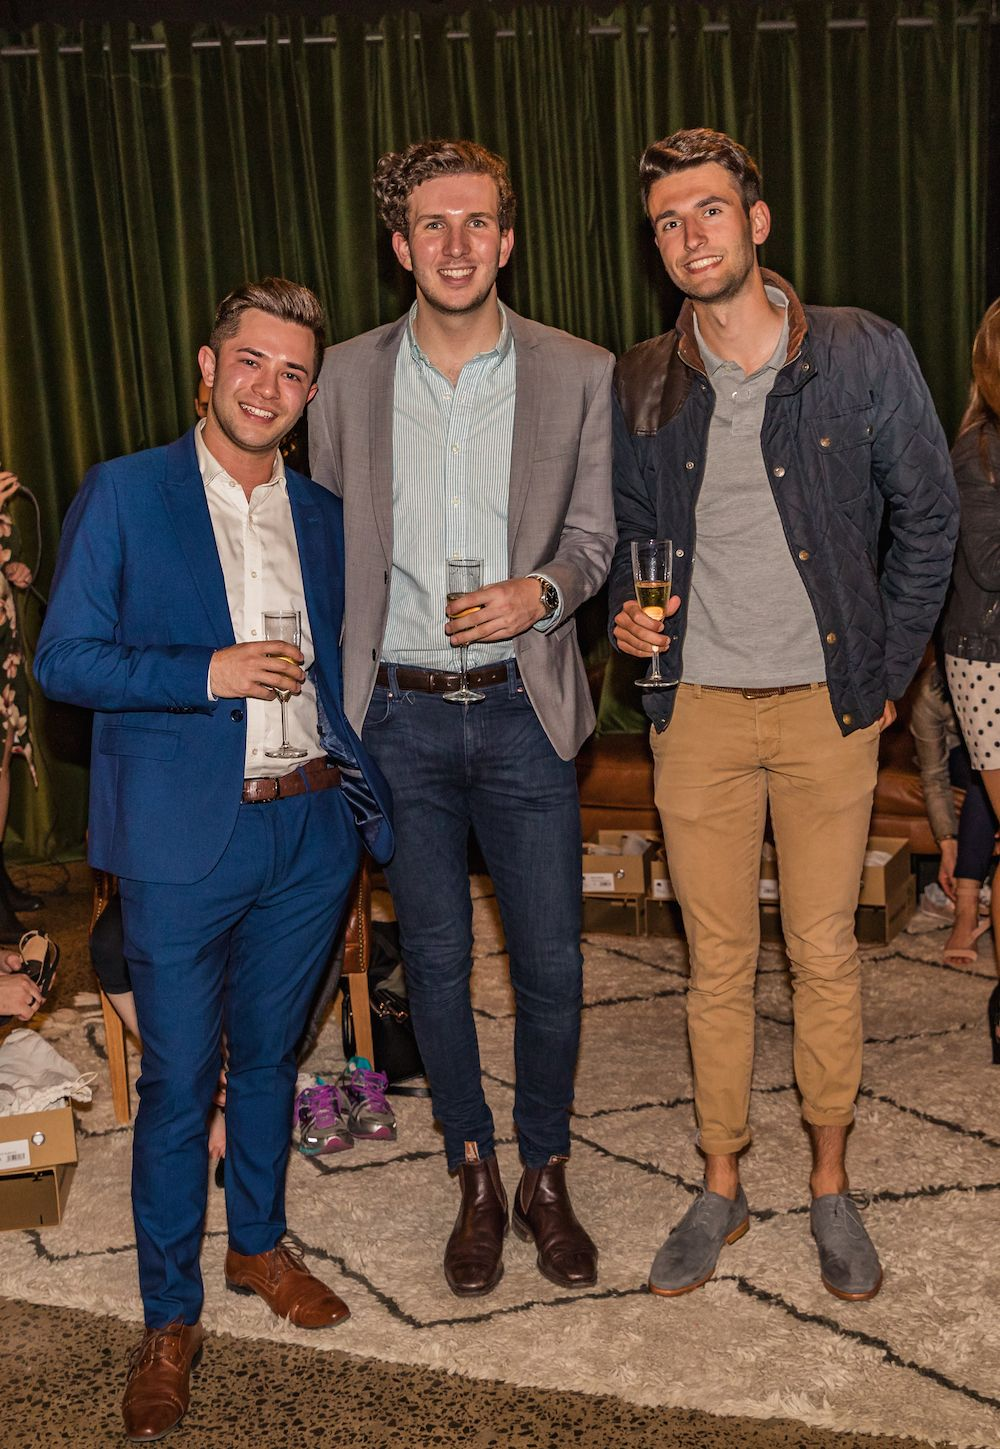 Bared_Footwear_Milliners_In_Manchester_Lane_Melbourne_CBD_Event_The_Boys